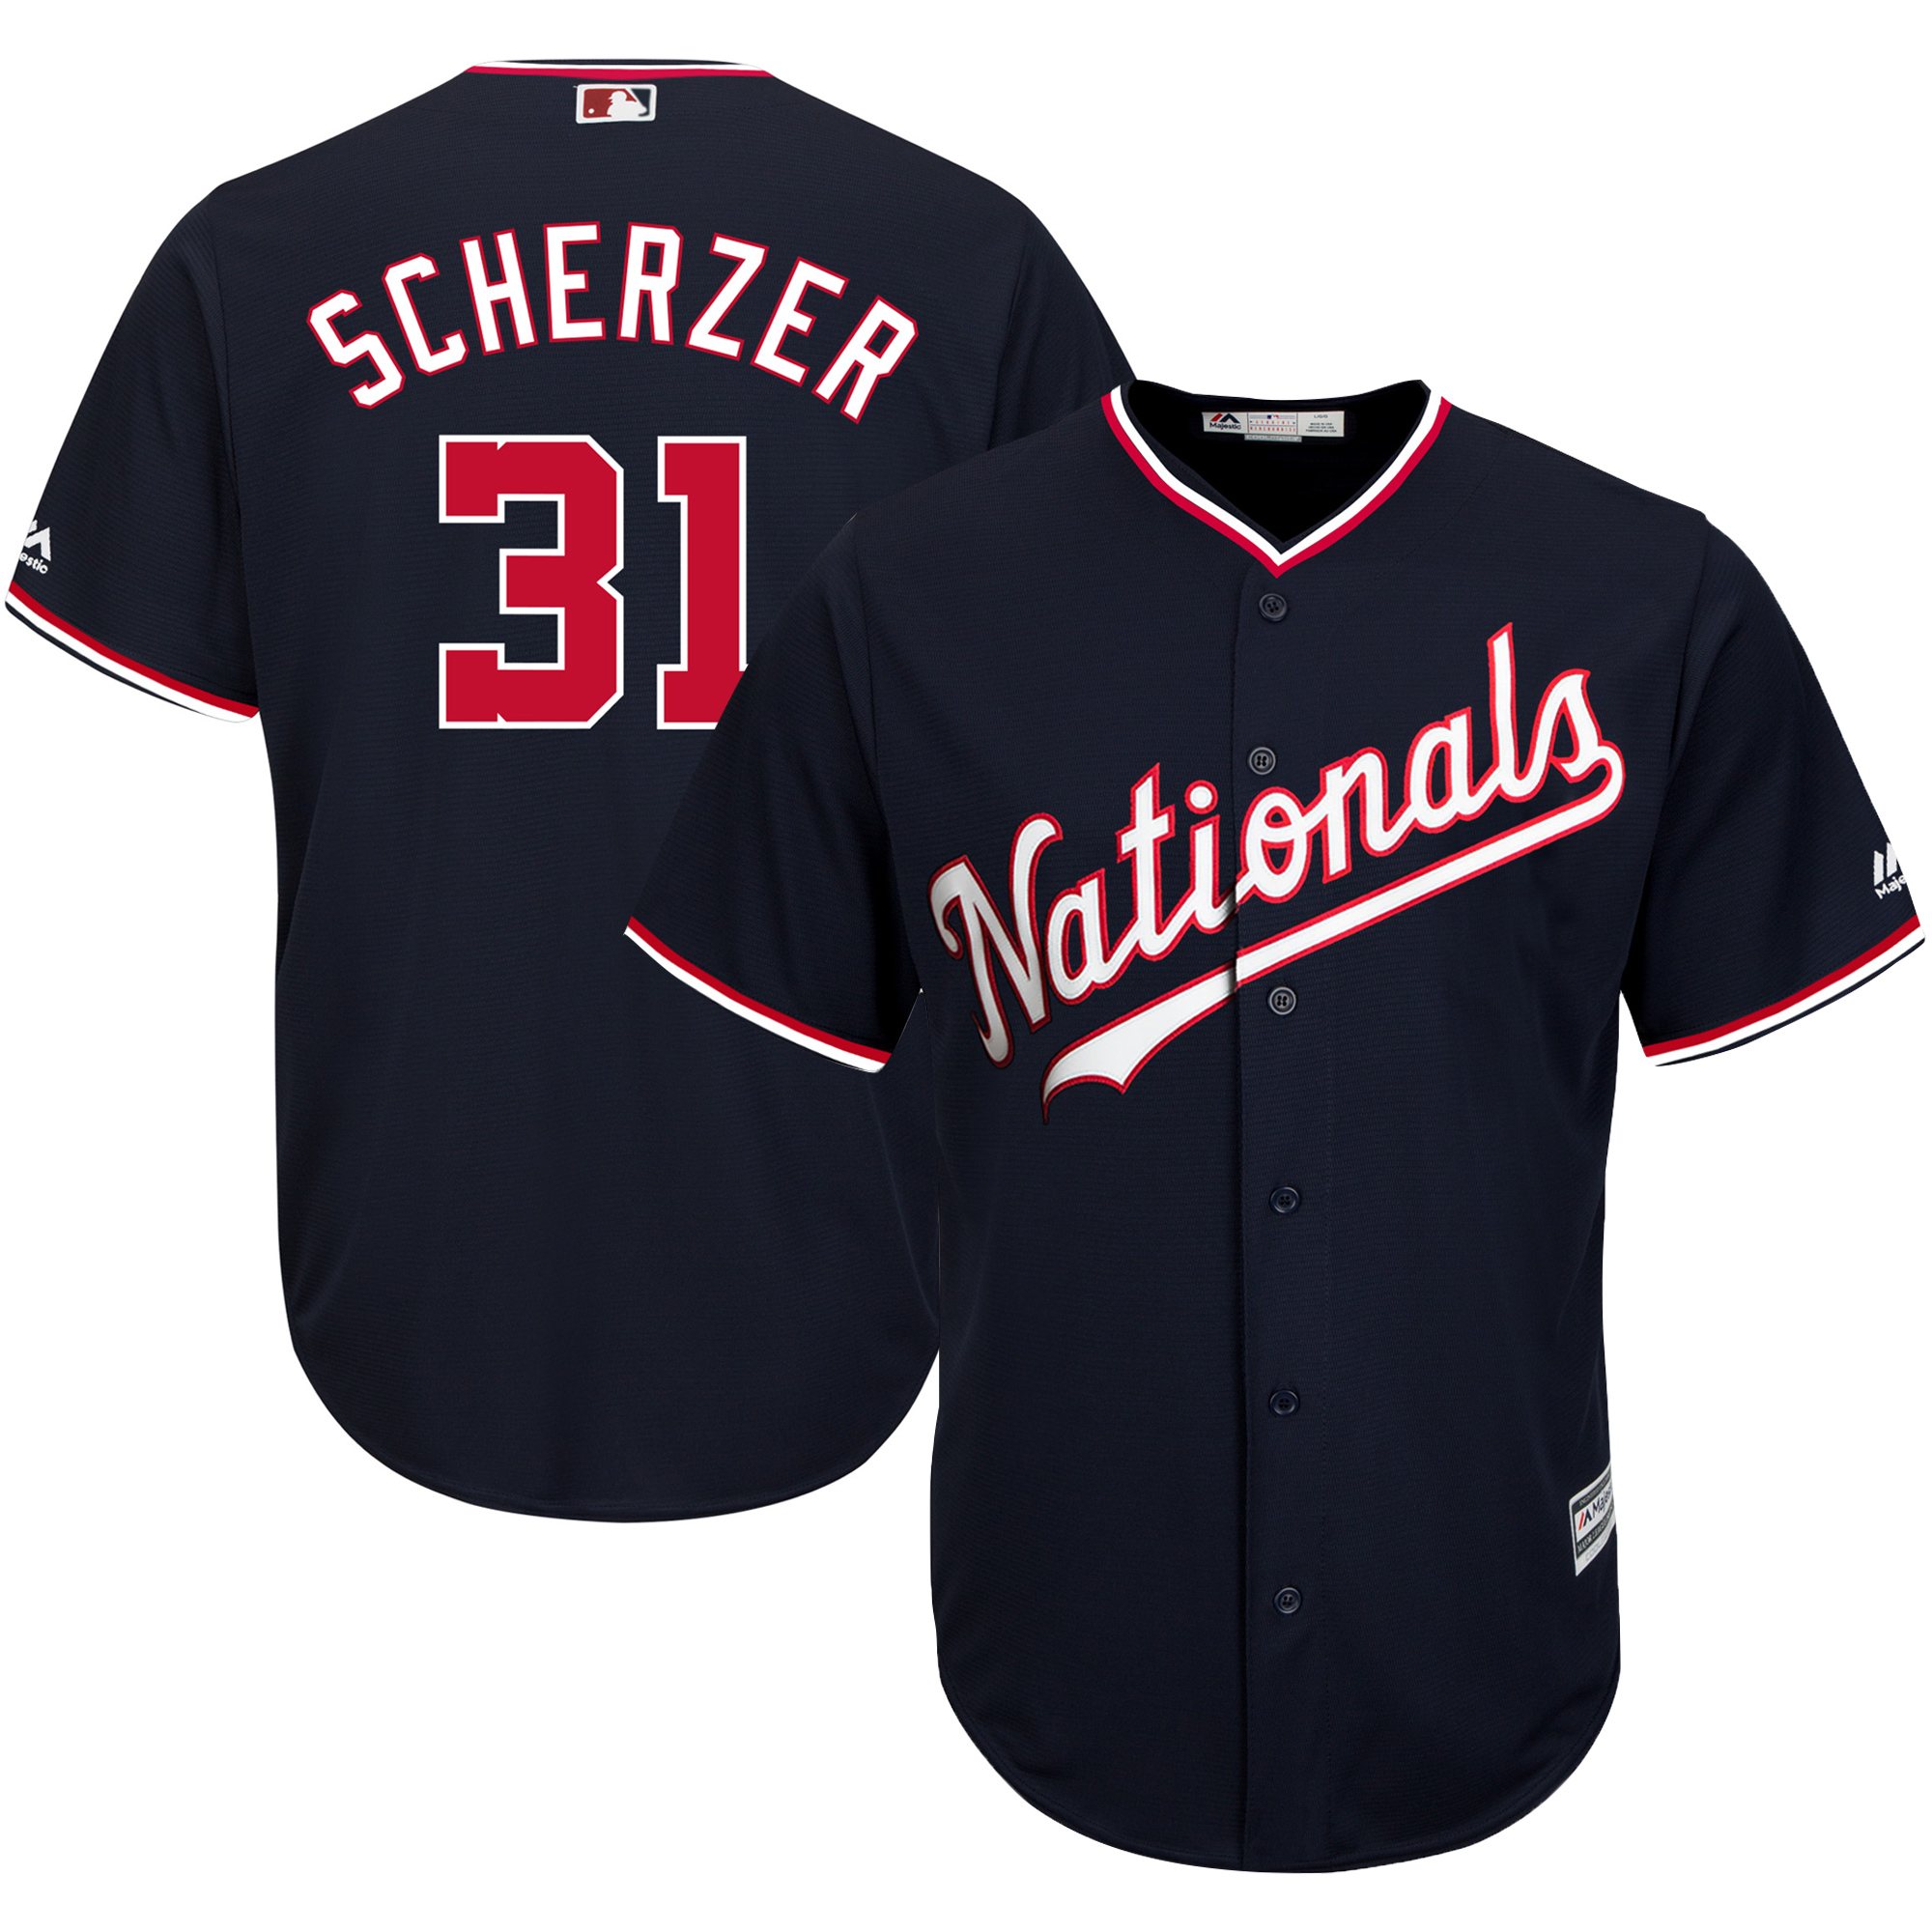 7961c3d77 Washington Nationals Team Shop - Walmart.com